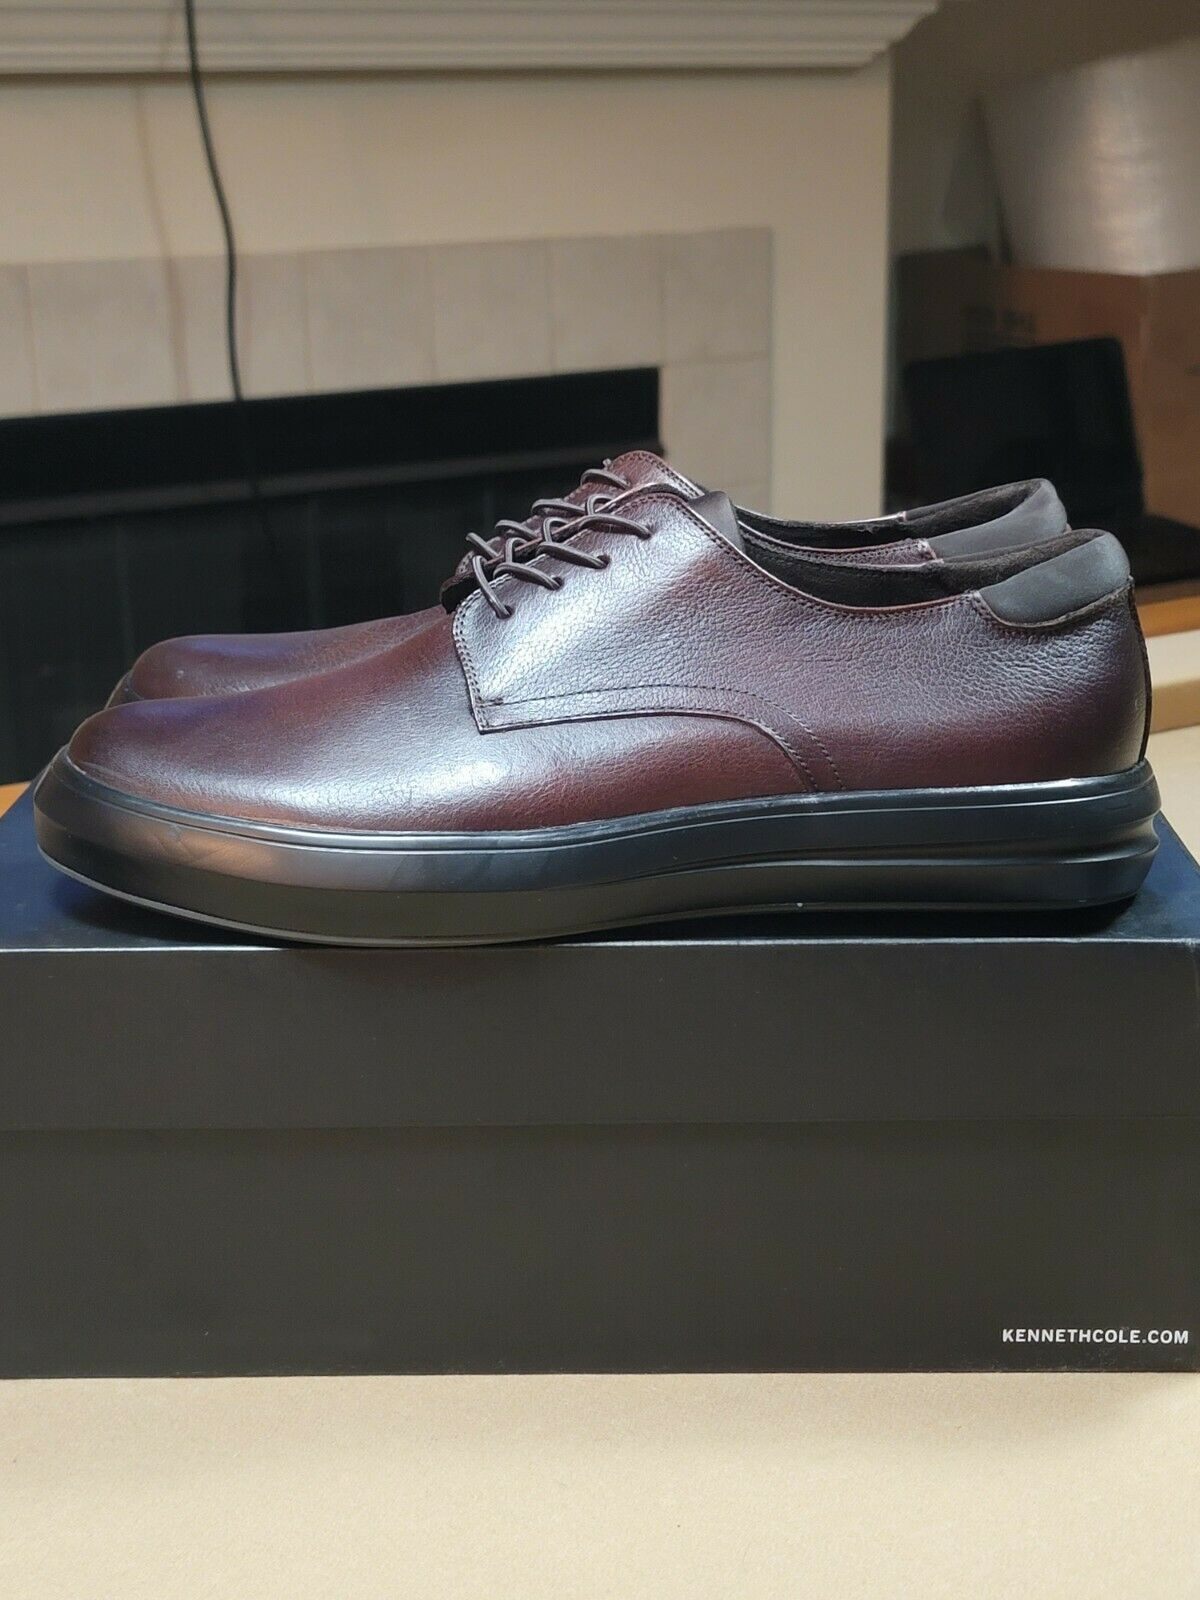 Kenneth Cole Men's The Mover Hybrid Lace Up Oxford Brown Leather - Sz 12M - NEW